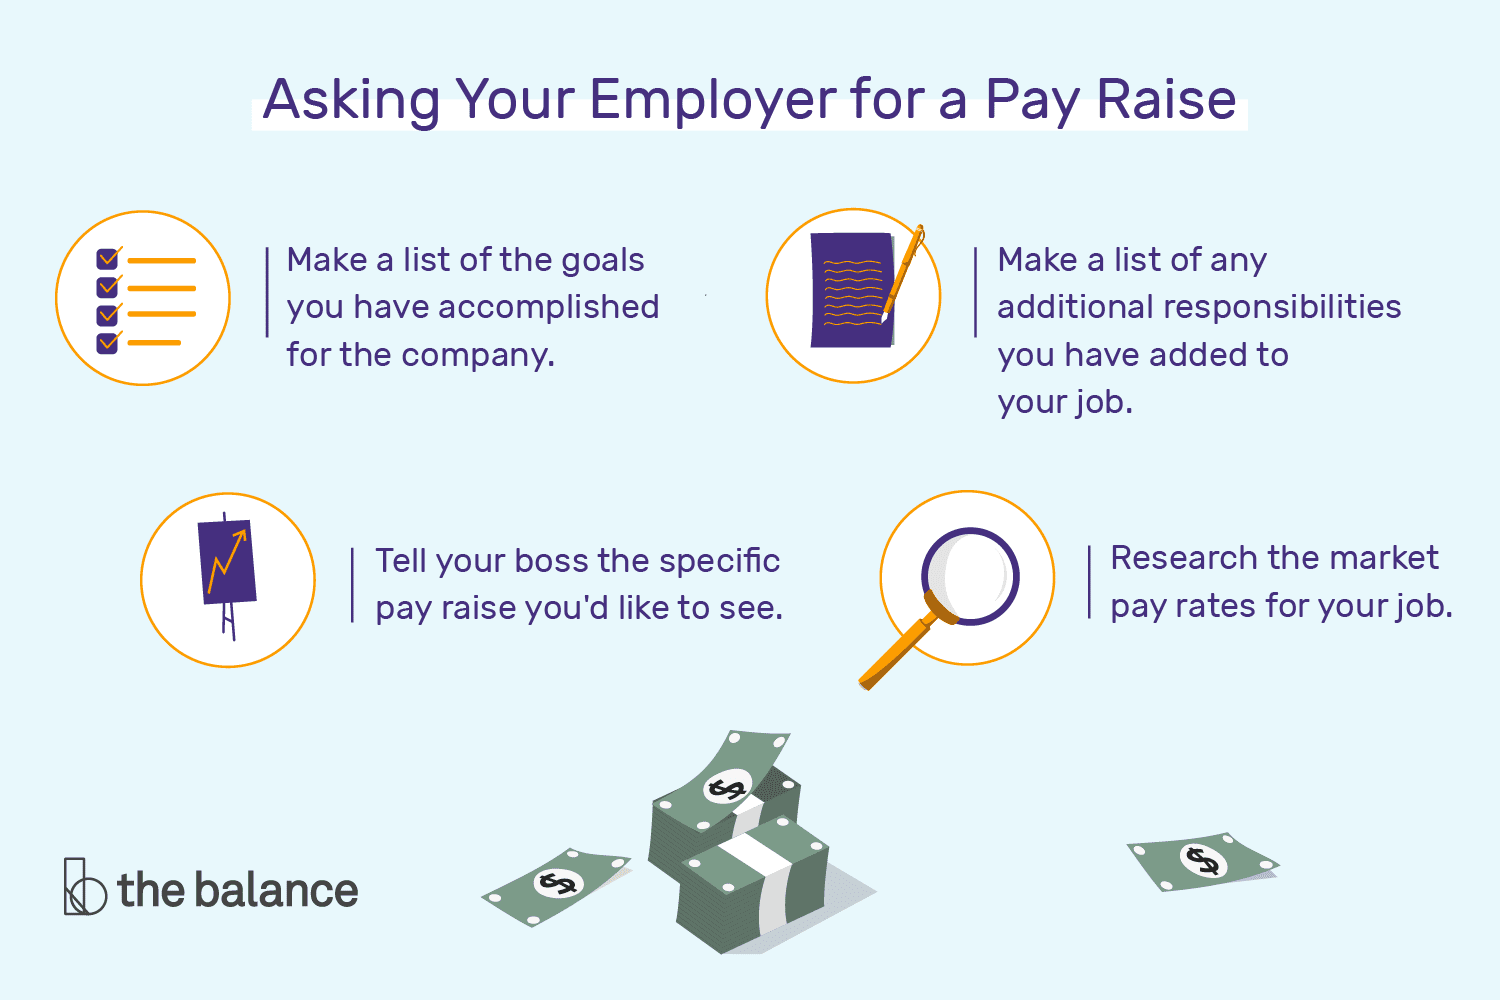 How to Ask Your Employer for a Pay Raise